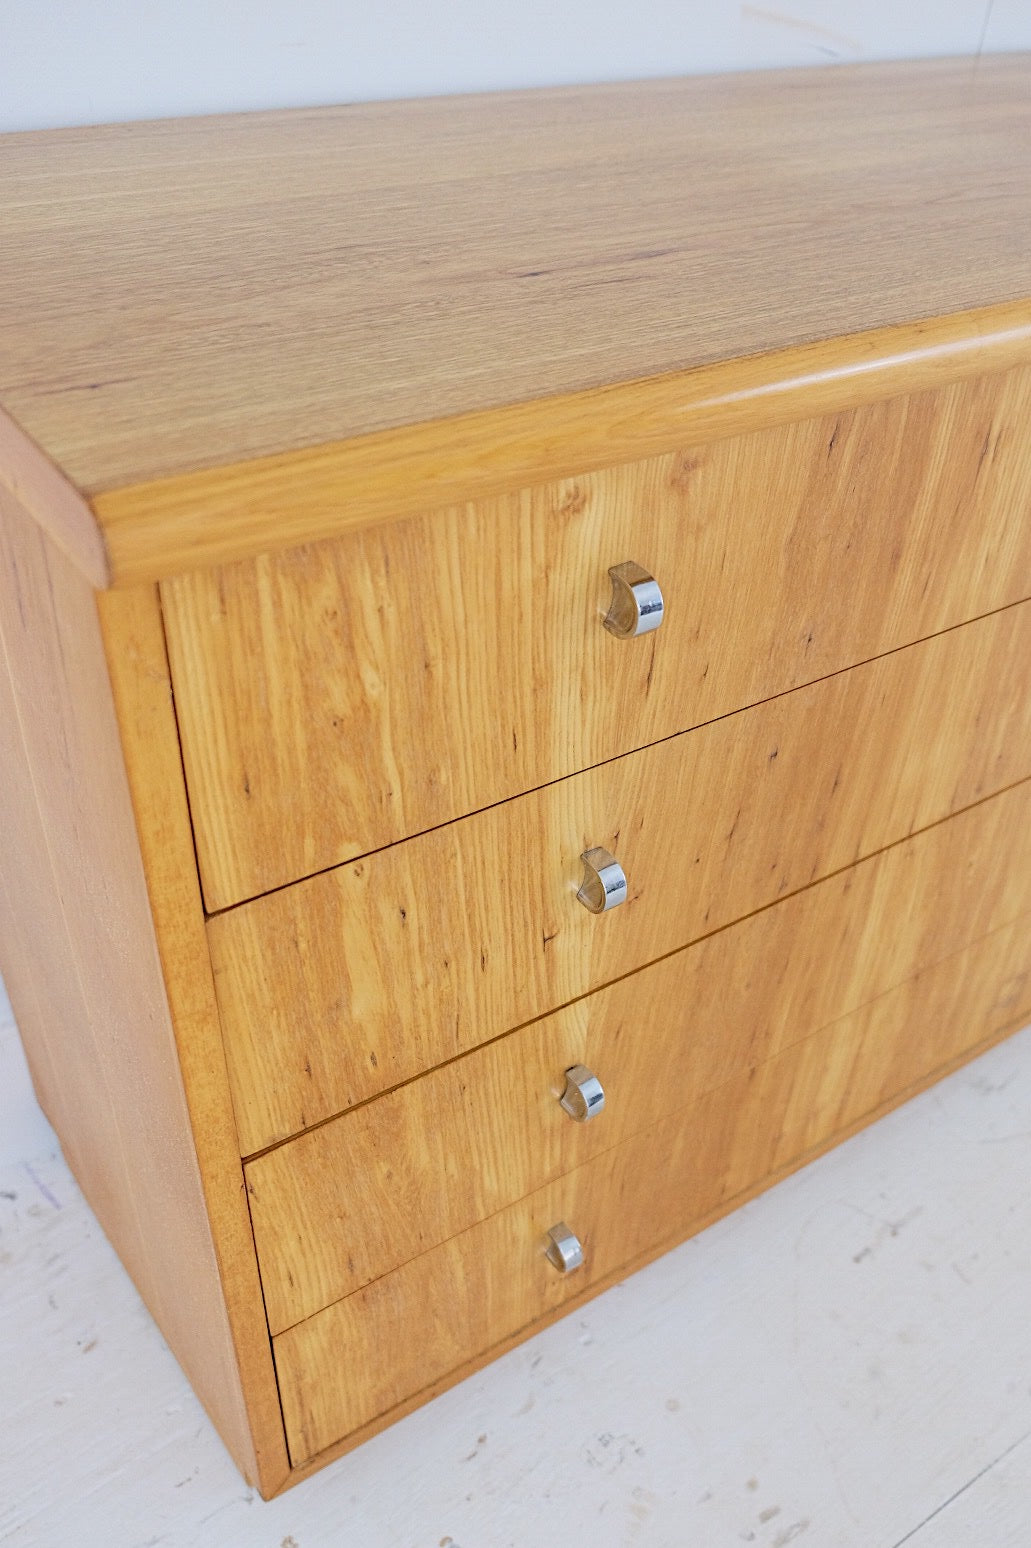 Founders Shallow Short Chest of Drawers Four Drawers Silver D Shaped Handles Solid Wood